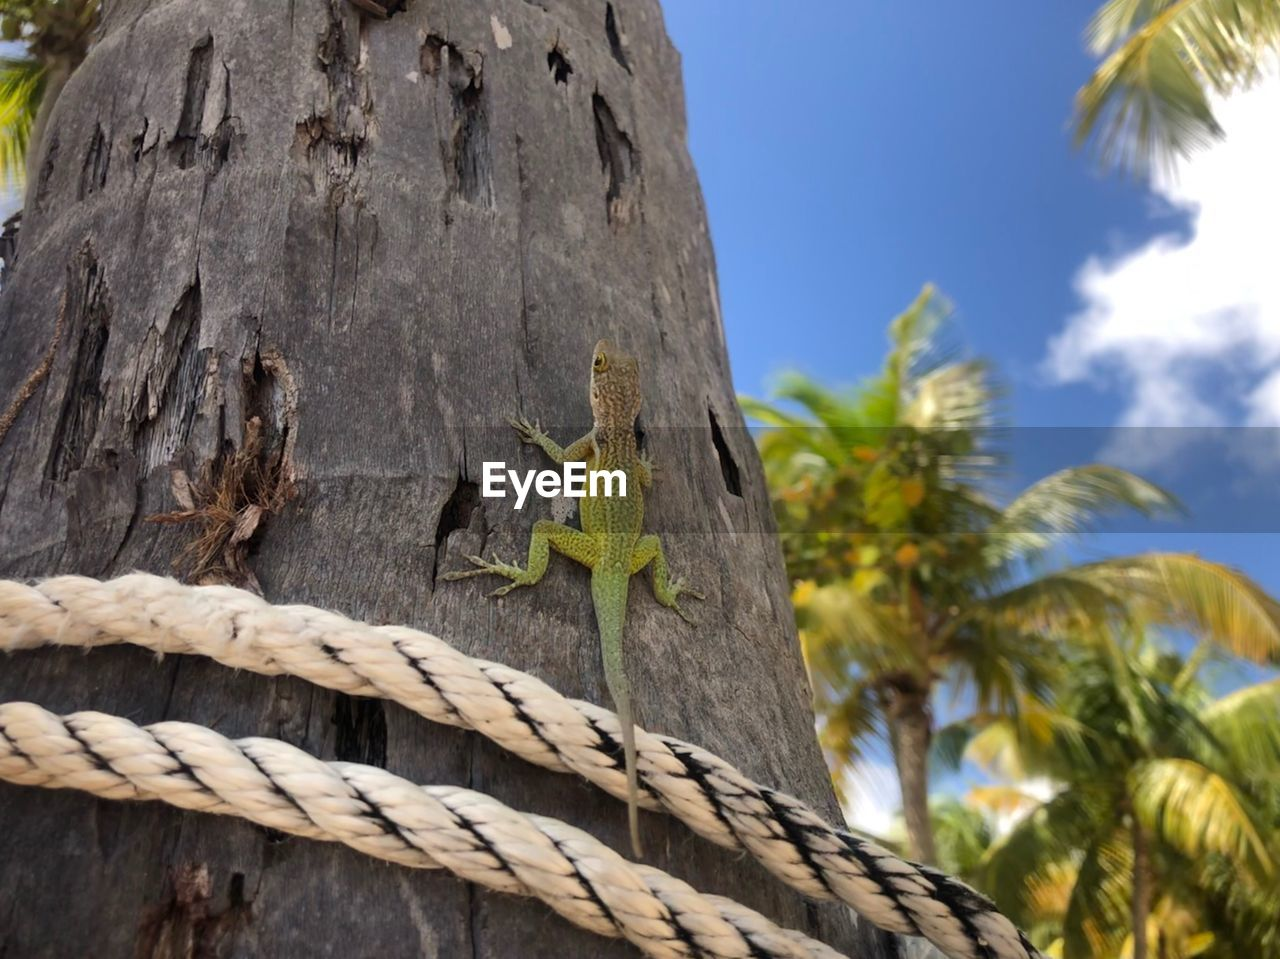 tree, low angle view, focus on foreground, nature, no people, day, sky, plant, trunk, tree trunk, palm tree, close-up, outdoors, sunlight, tropical climate, rope, textured, wood - material, growth, art and craft